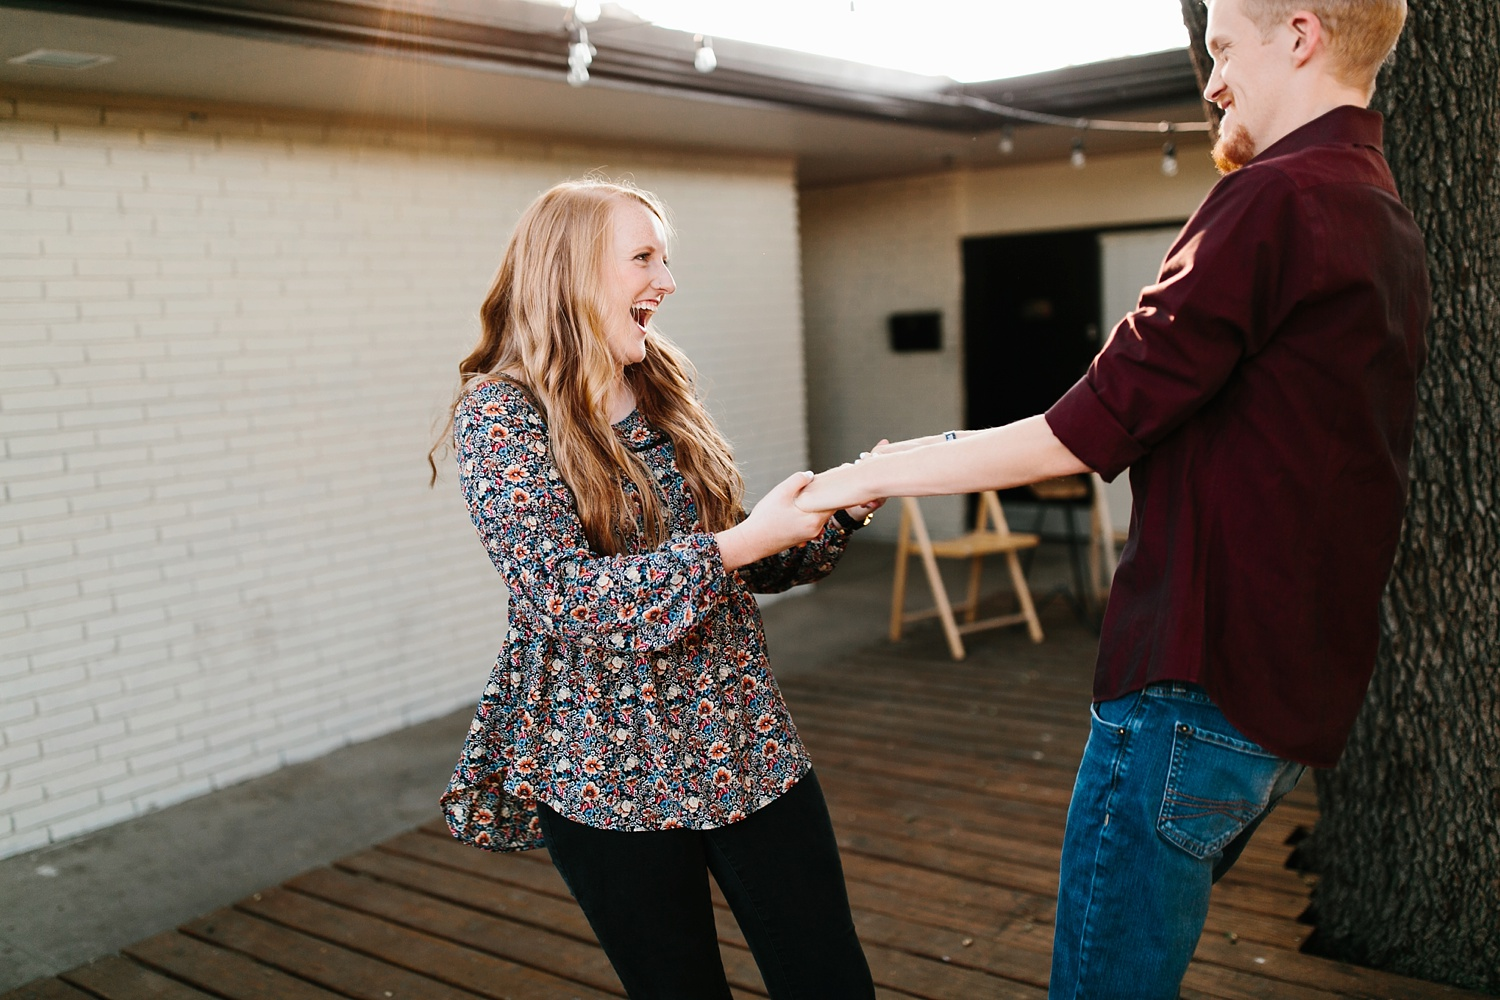 Kayla + Alex _ a joyful and loving engagement shoot in Waco, Texas by North Texas Wedding Photographer Rachel Meagan Photography _12